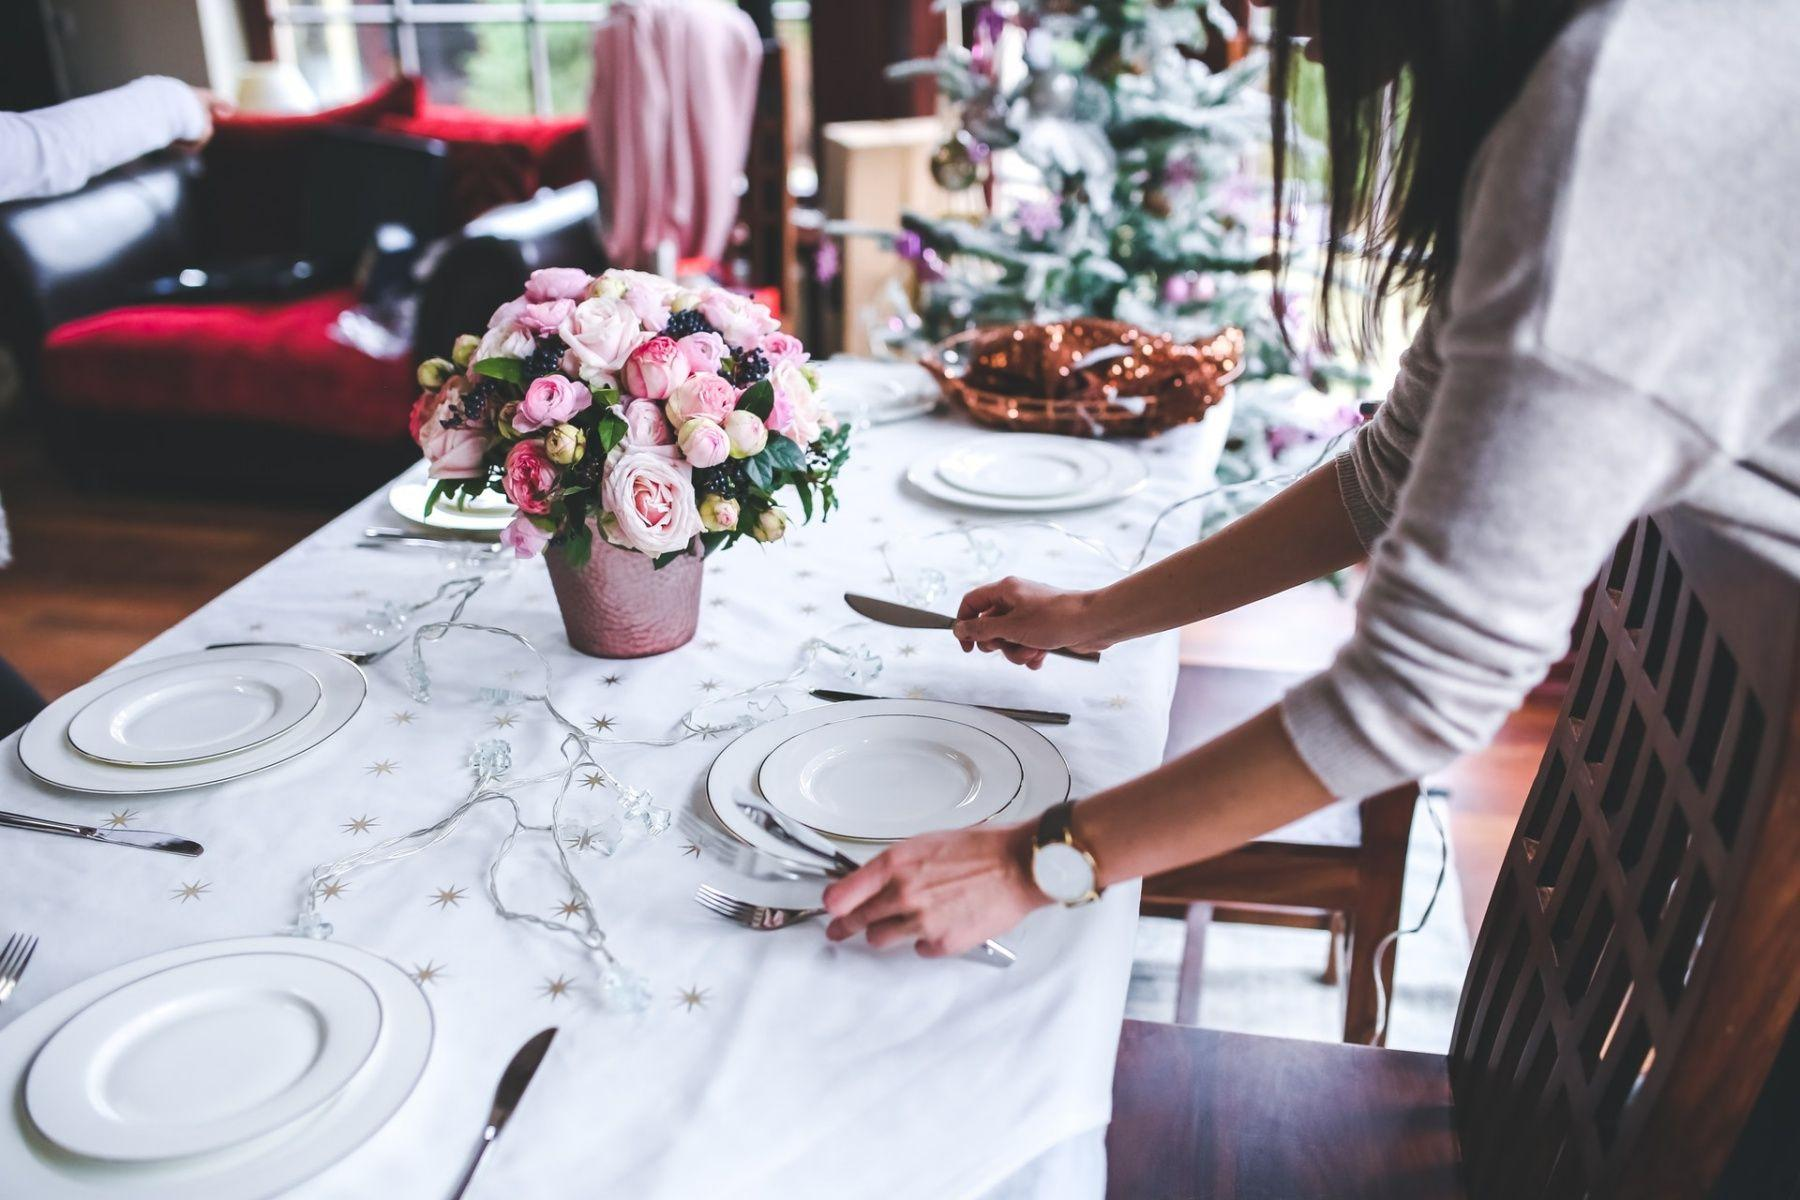 How To Host A Stress-Free Party This Festive Season